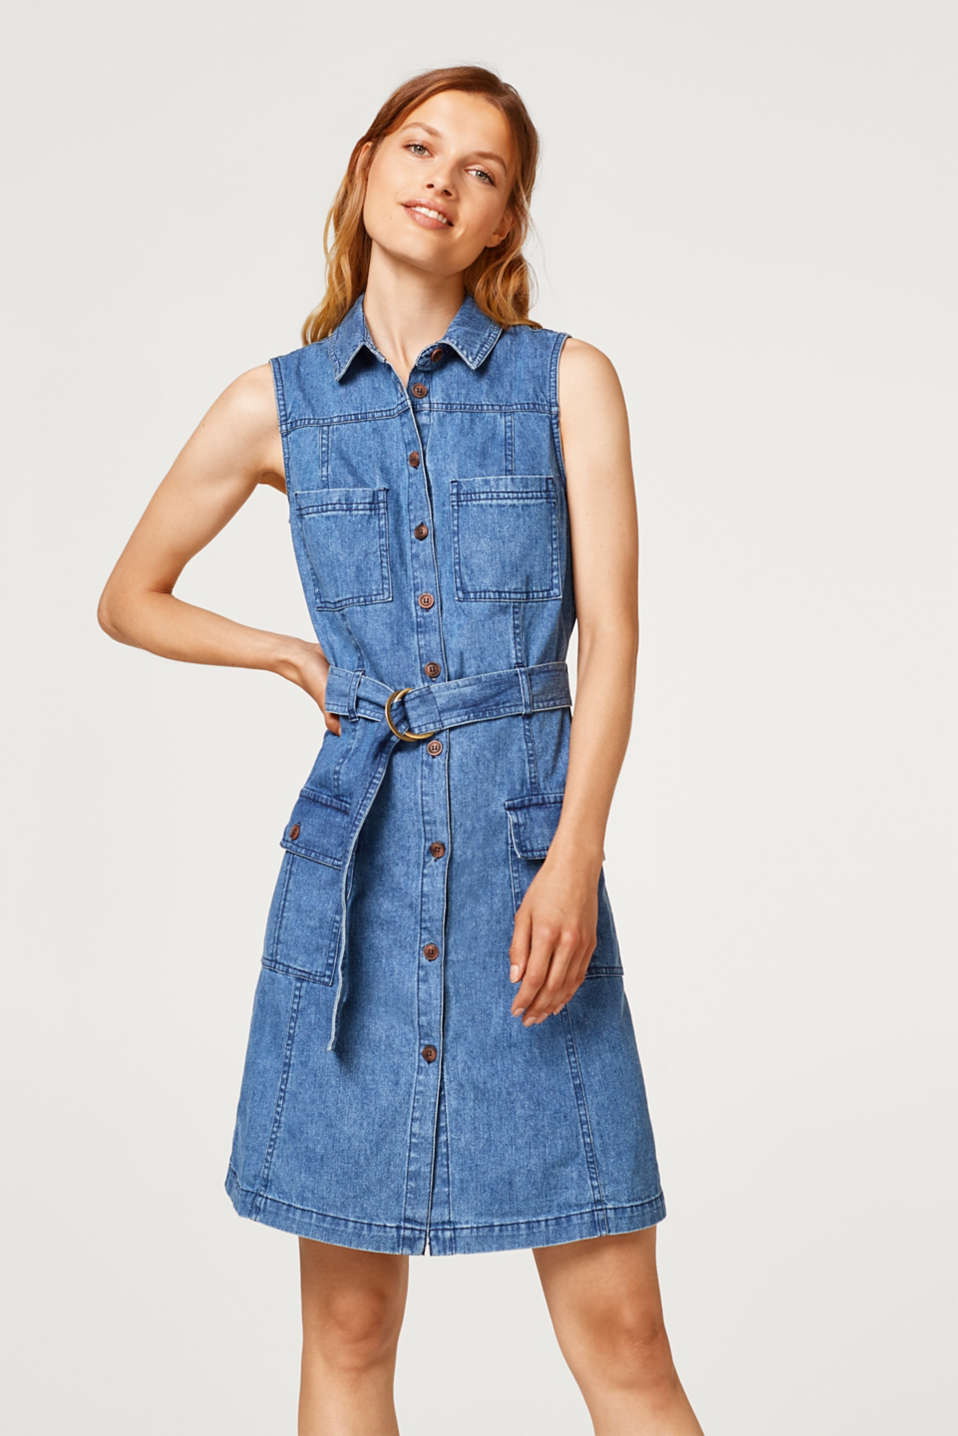 edc - Denim dress in a shirt blouse style, 100% cotton